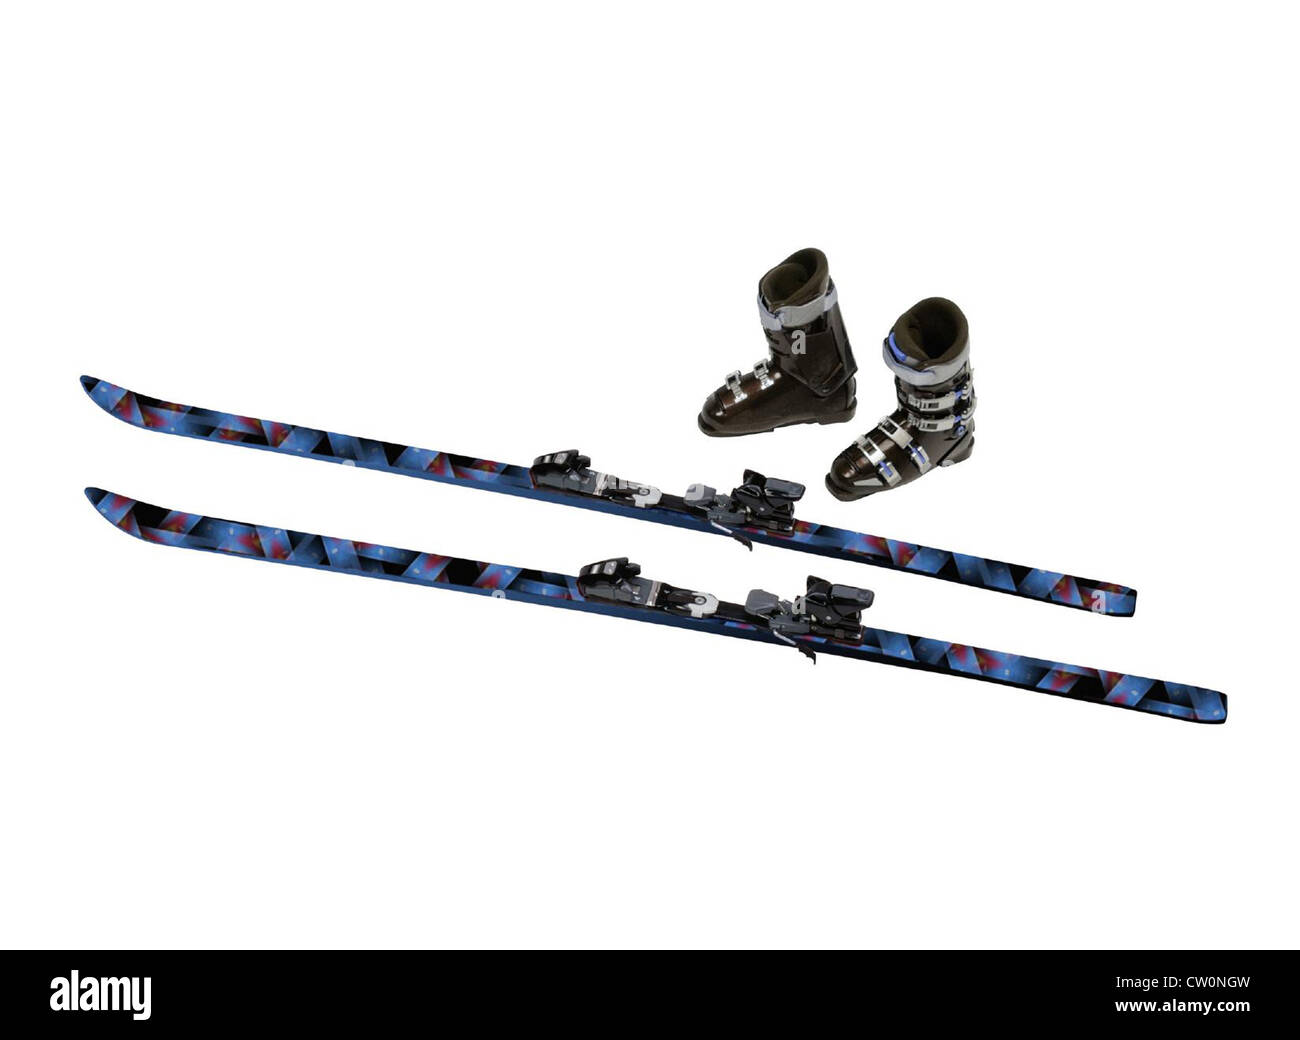 Ski tips - Stock Image